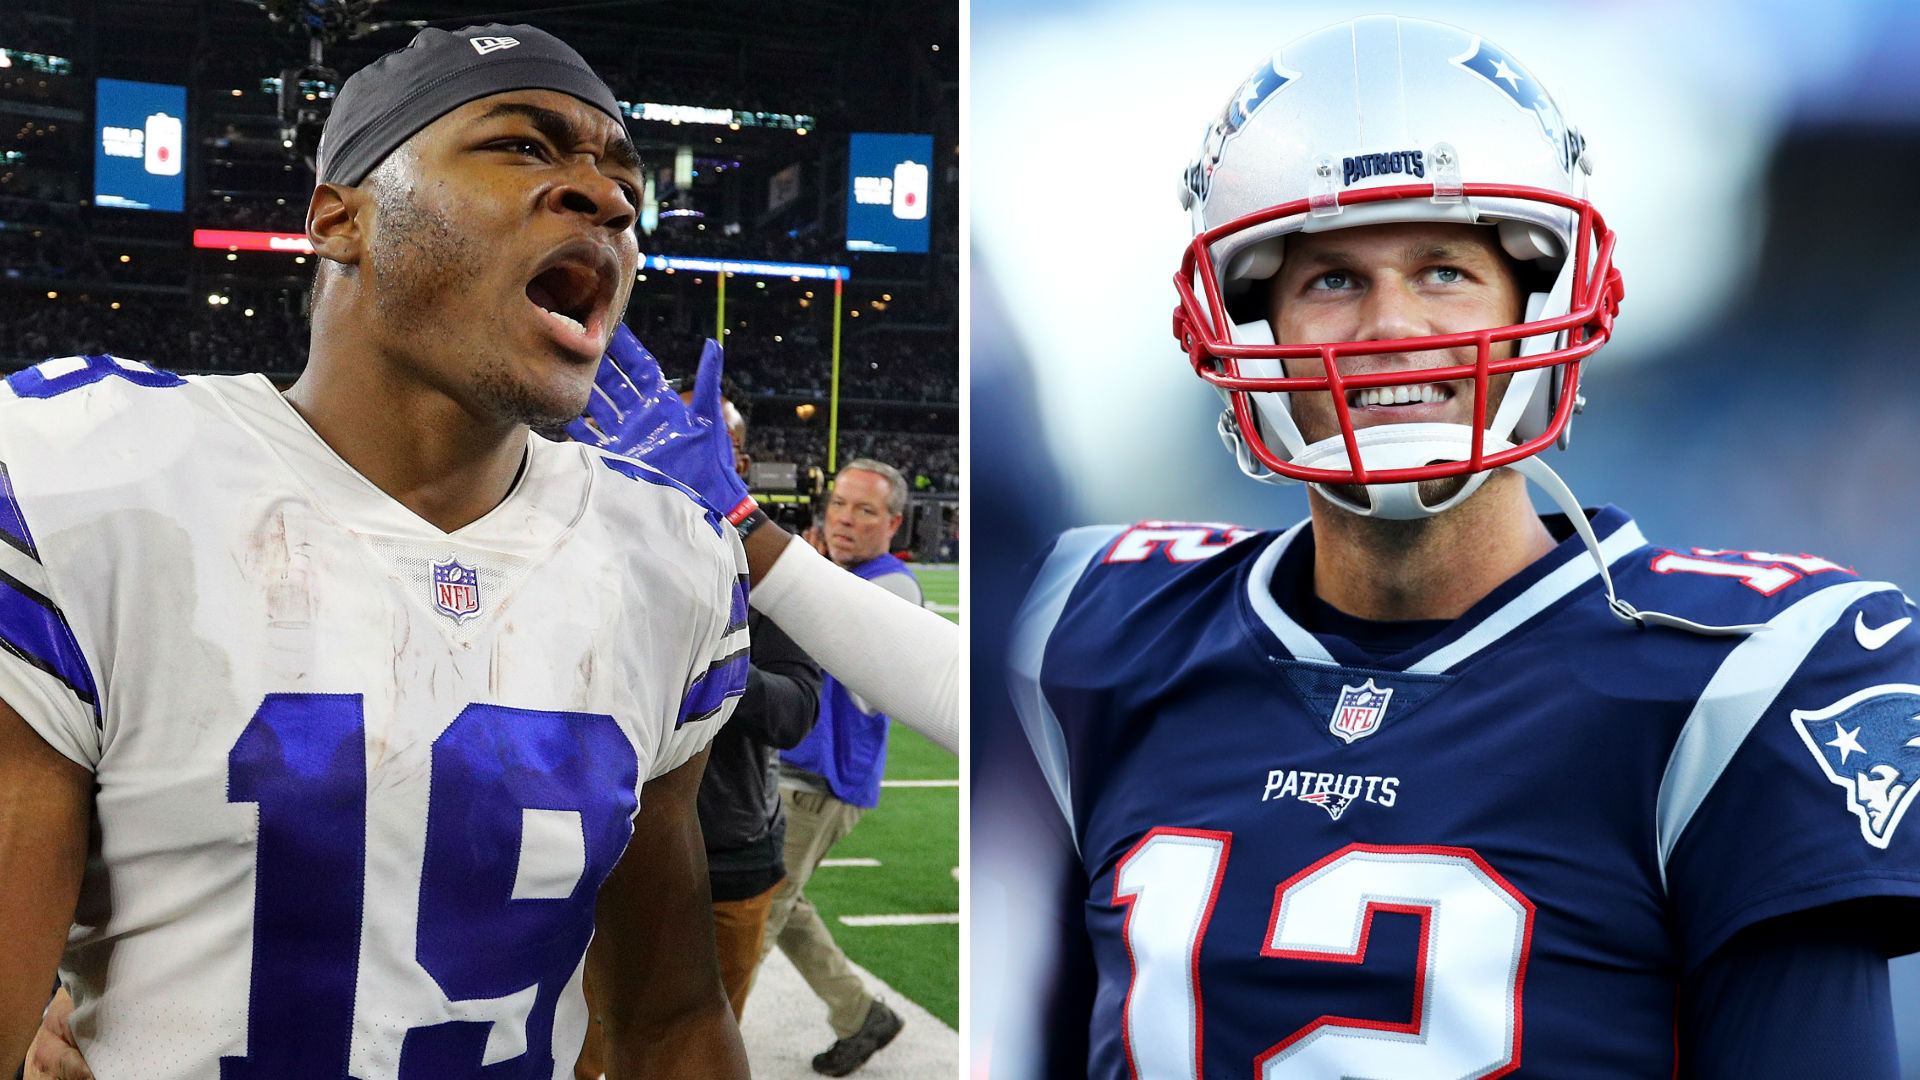 NFL news and notes: Joe Namath dubs Tom Brady best ever; Amari Cooper wants to be Cowboy 'a long time'